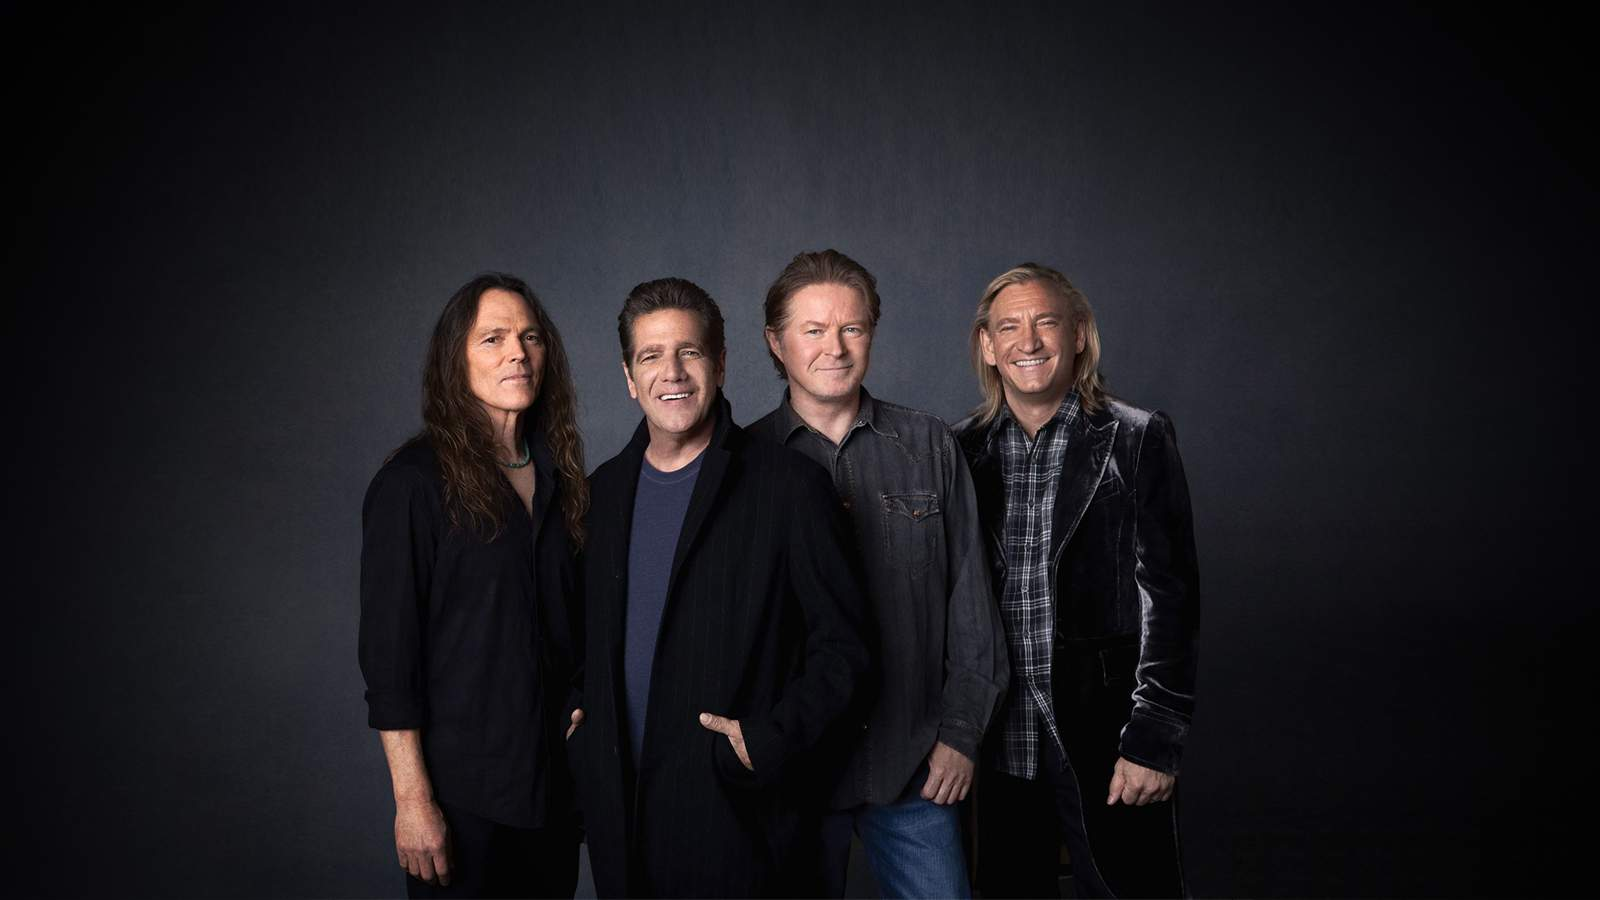 The Eagles (Rescheduled from 3/17/2020, 10/21/2020)